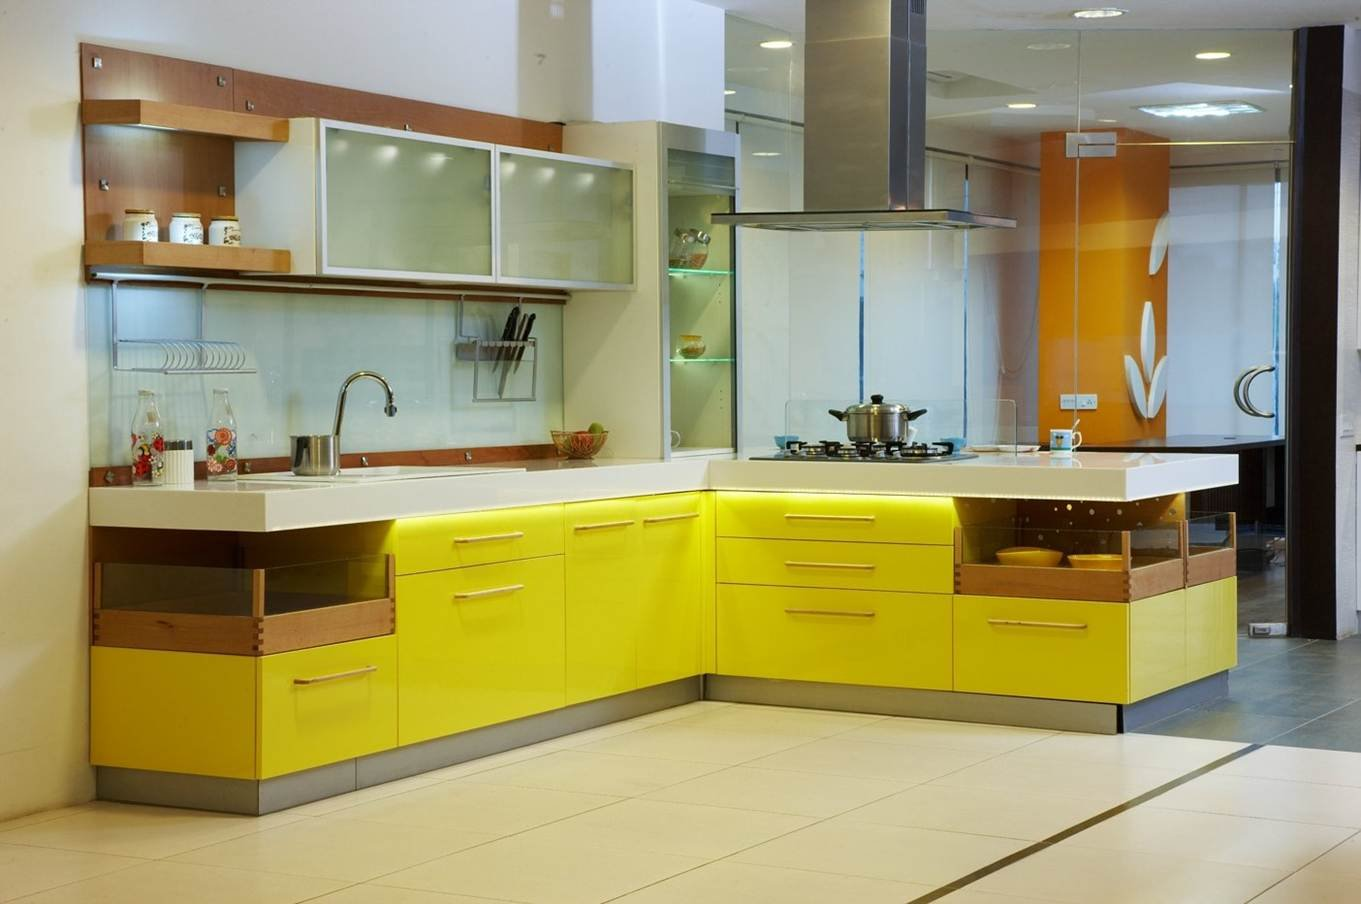 Design indian kitchen for Modular kitchen designs for small kitchens in india